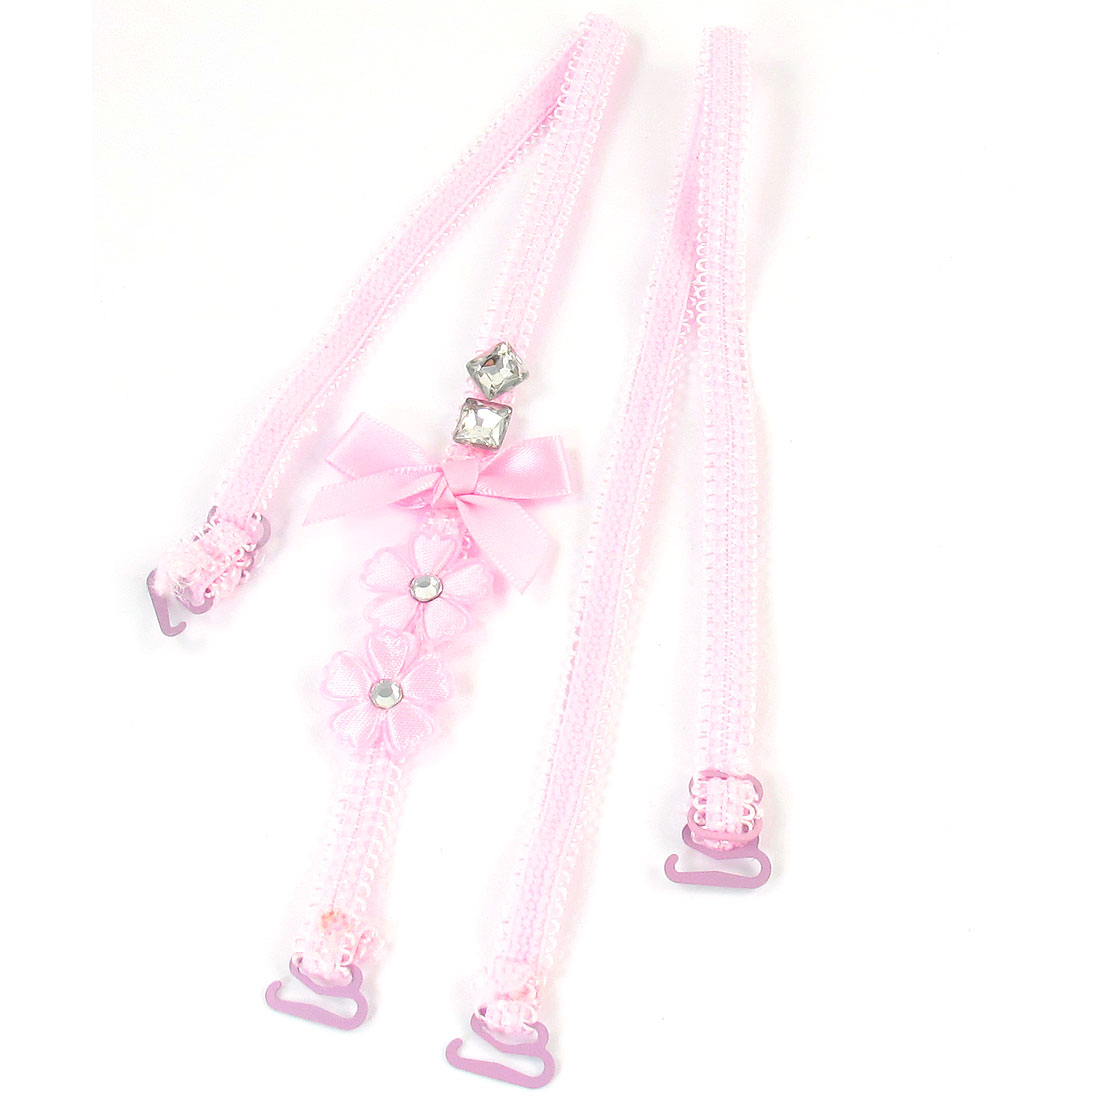 Ladies Pink Flower Rhinestones Decor Adjustable Band Bra Shoulder Strap 2PCS